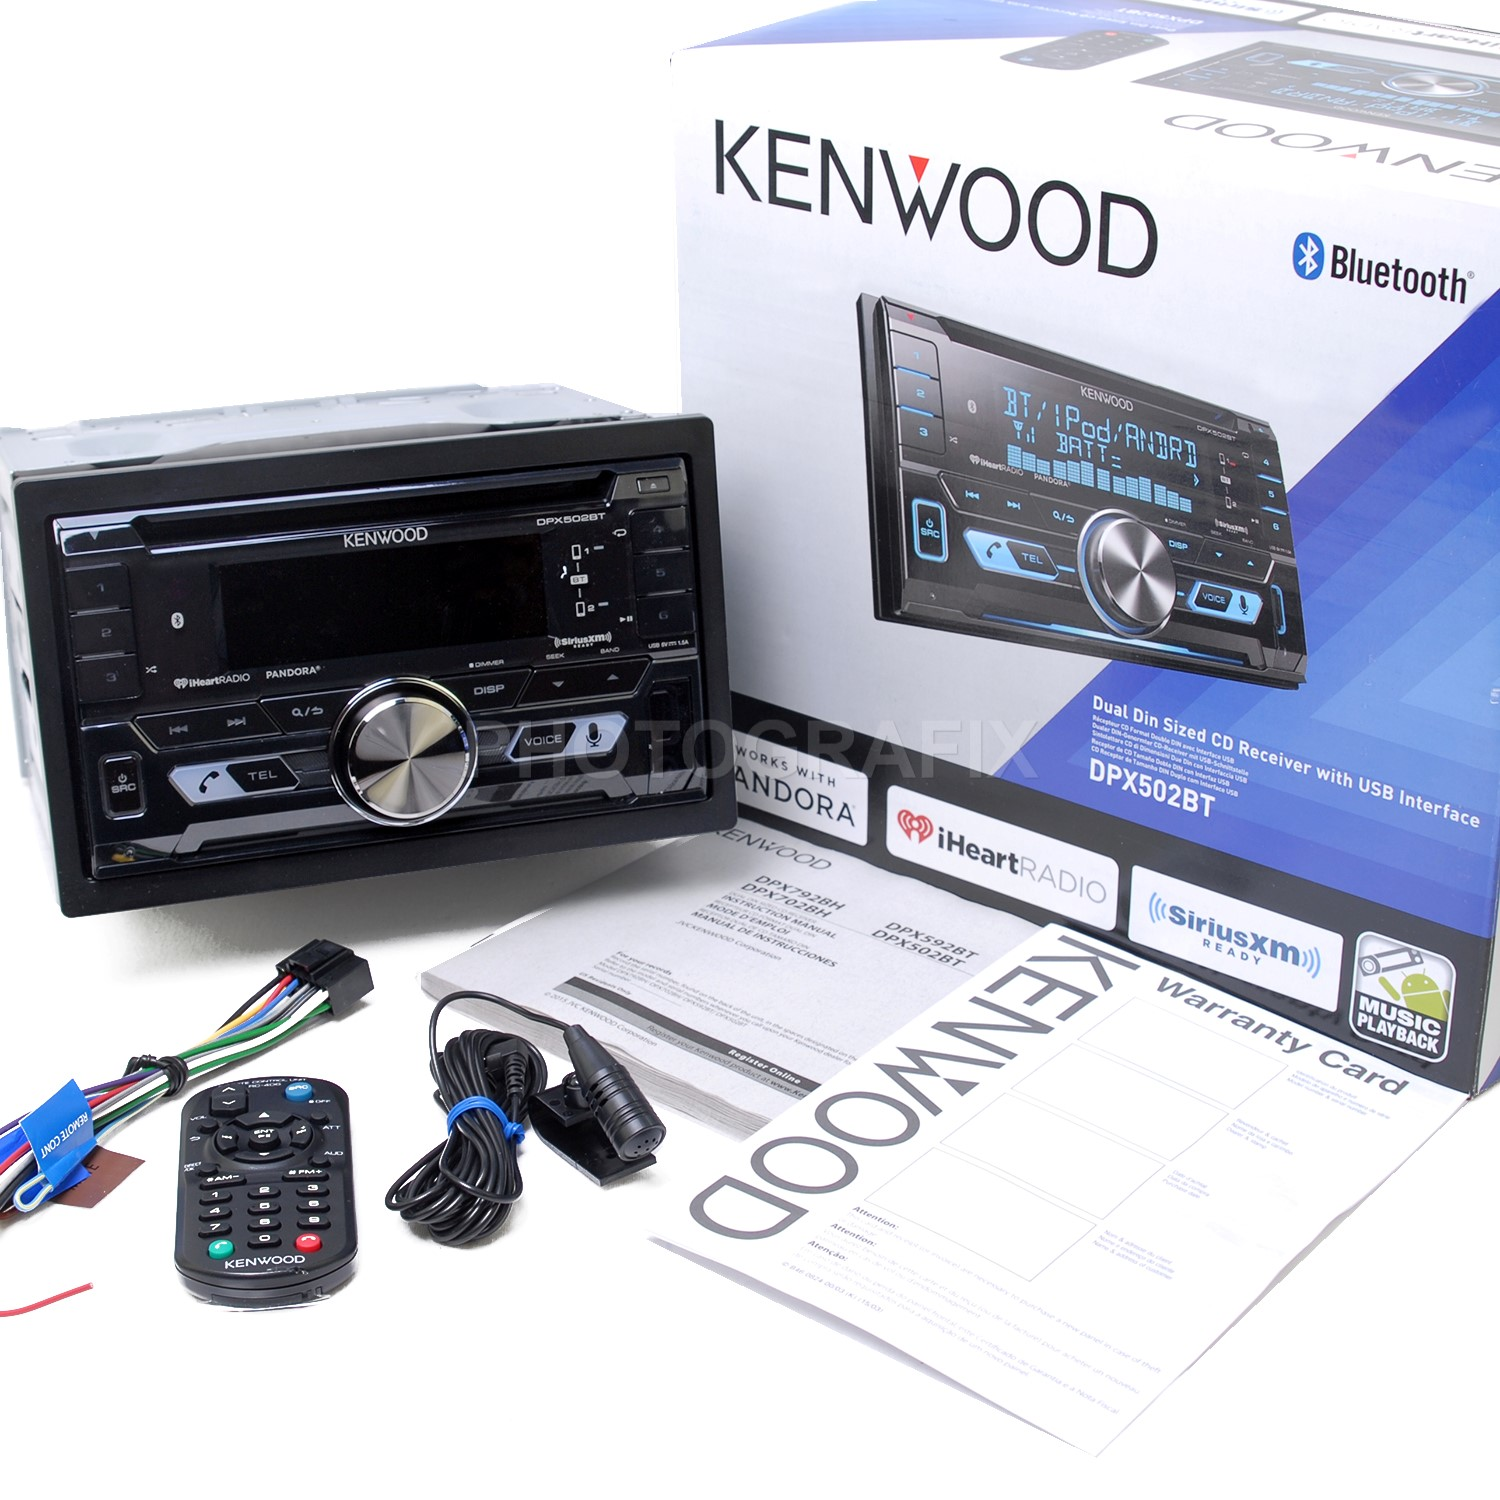 hight resolution of kenwood dpxbt wire diagram kenwood image wiring kenwood double din bluetooth cd player usb aux car